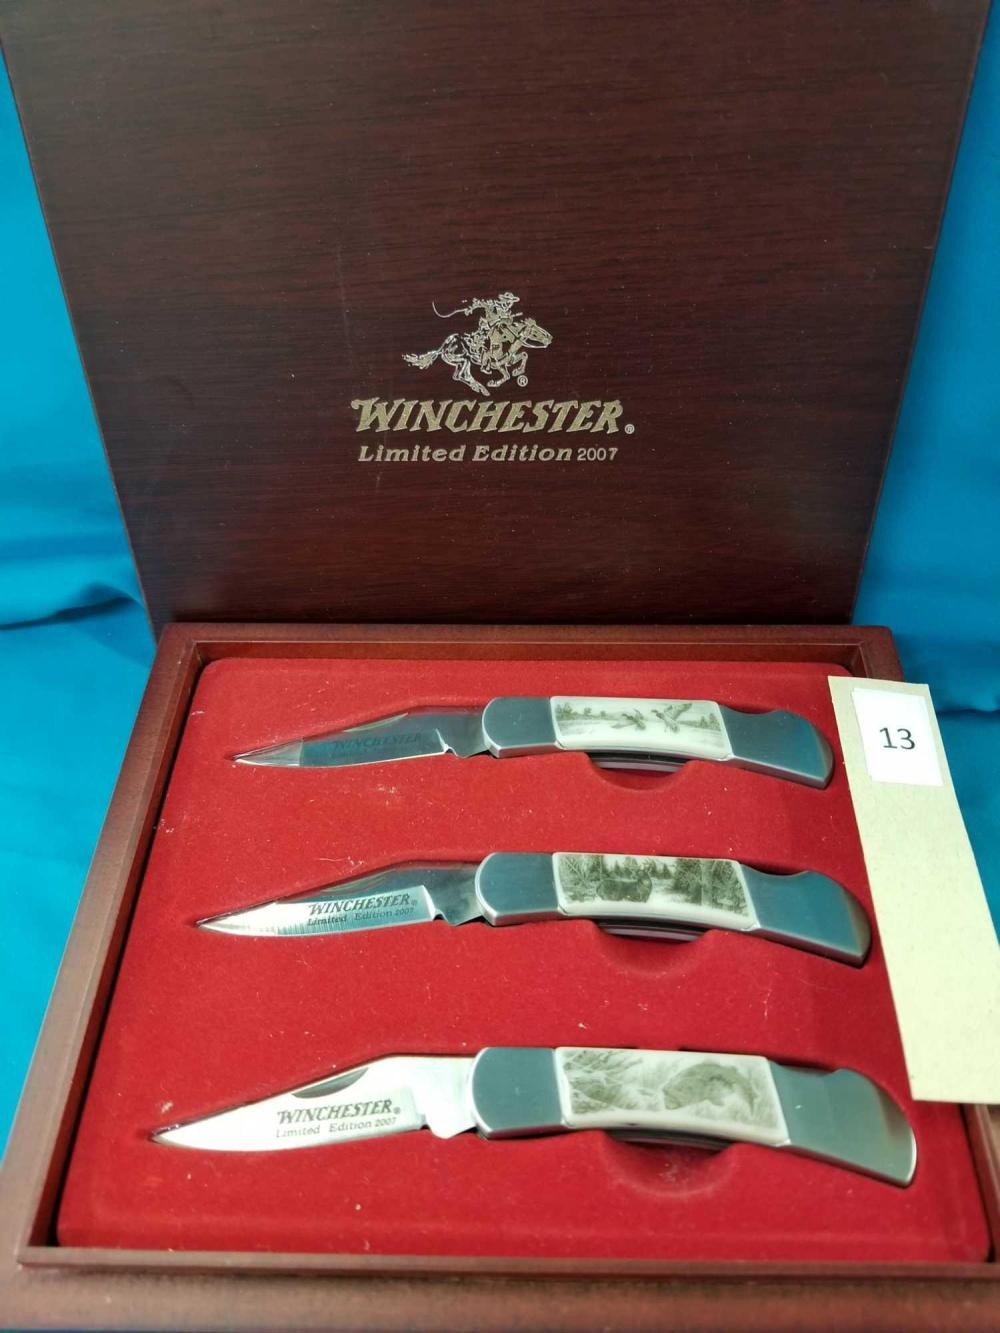 WINCHESTER 2007 3 FOLDING KNIFE LIMITED EDITION SET